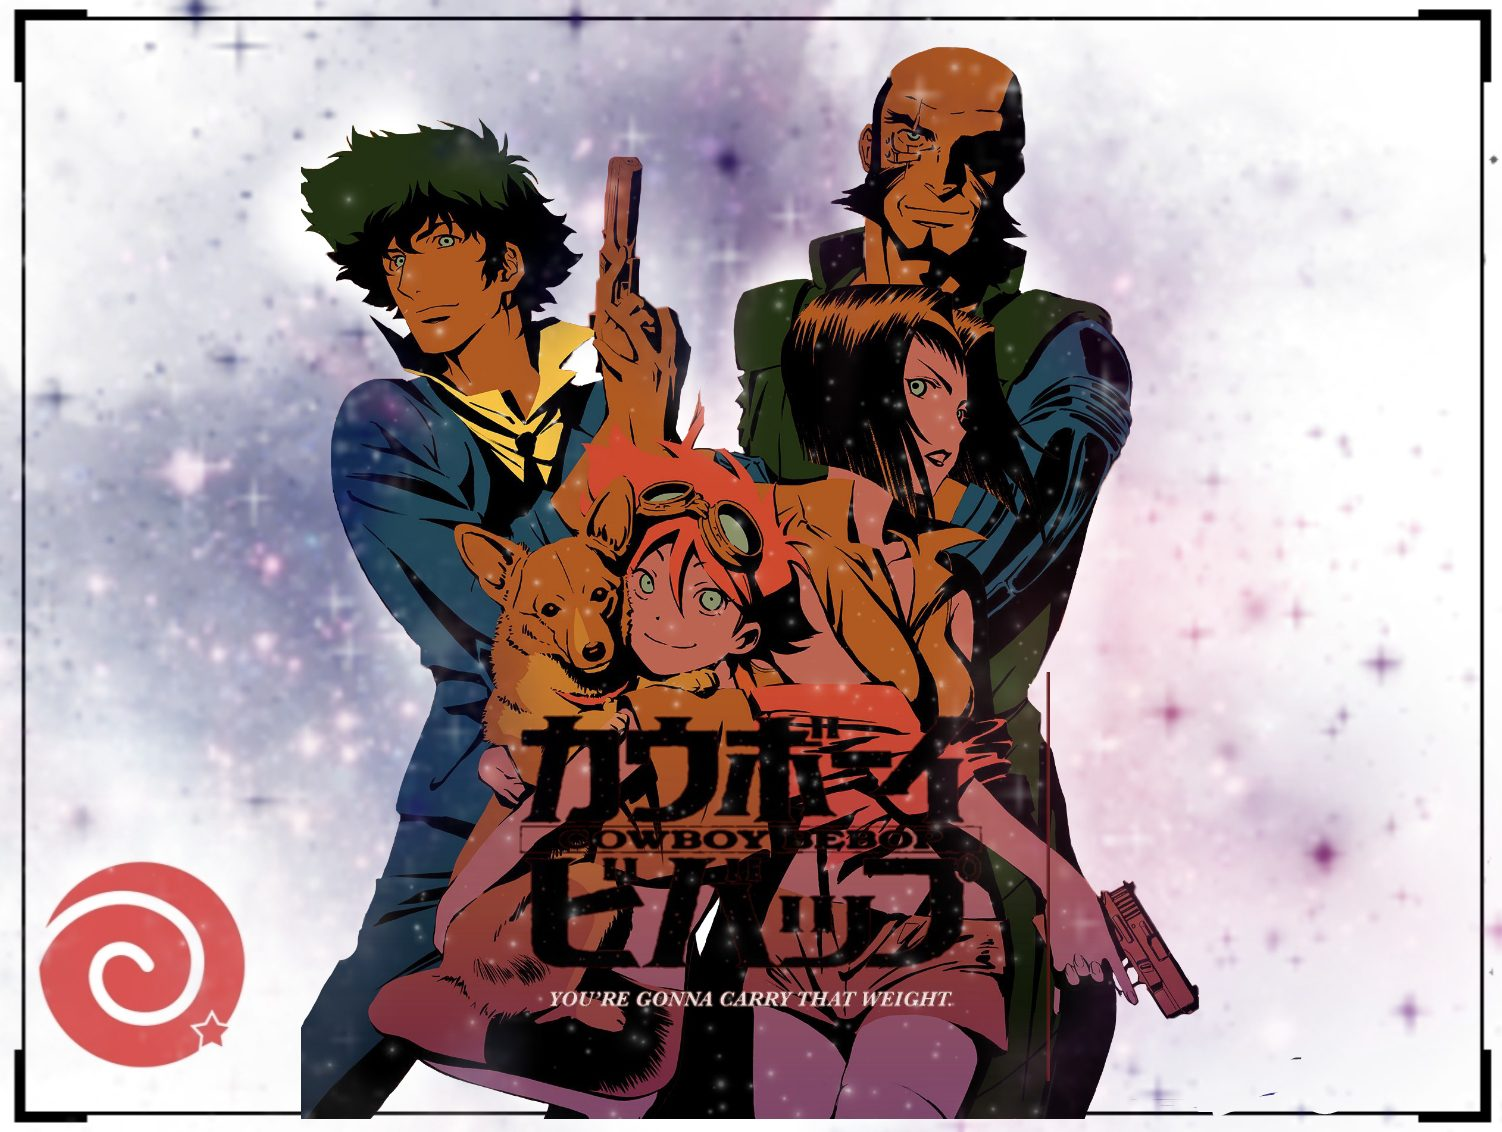 Quotes From Cowboy Bebop